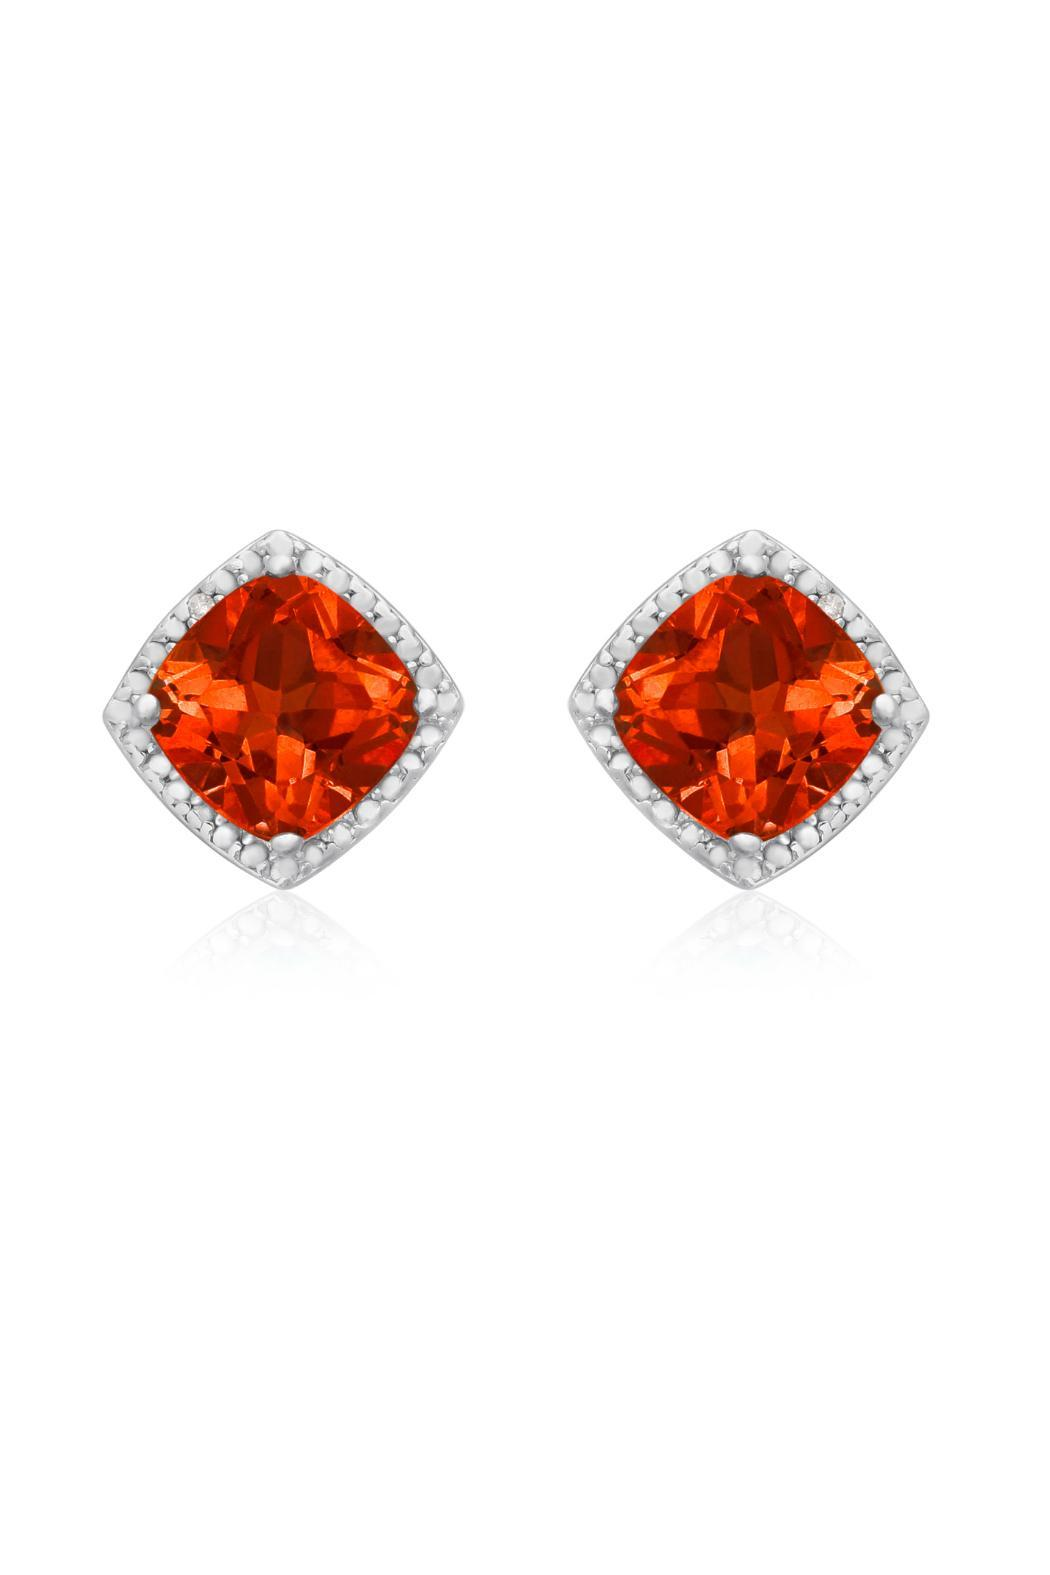 in s earrings carat diamond golds and white padparadscha ring prouctdetail sapphire gold